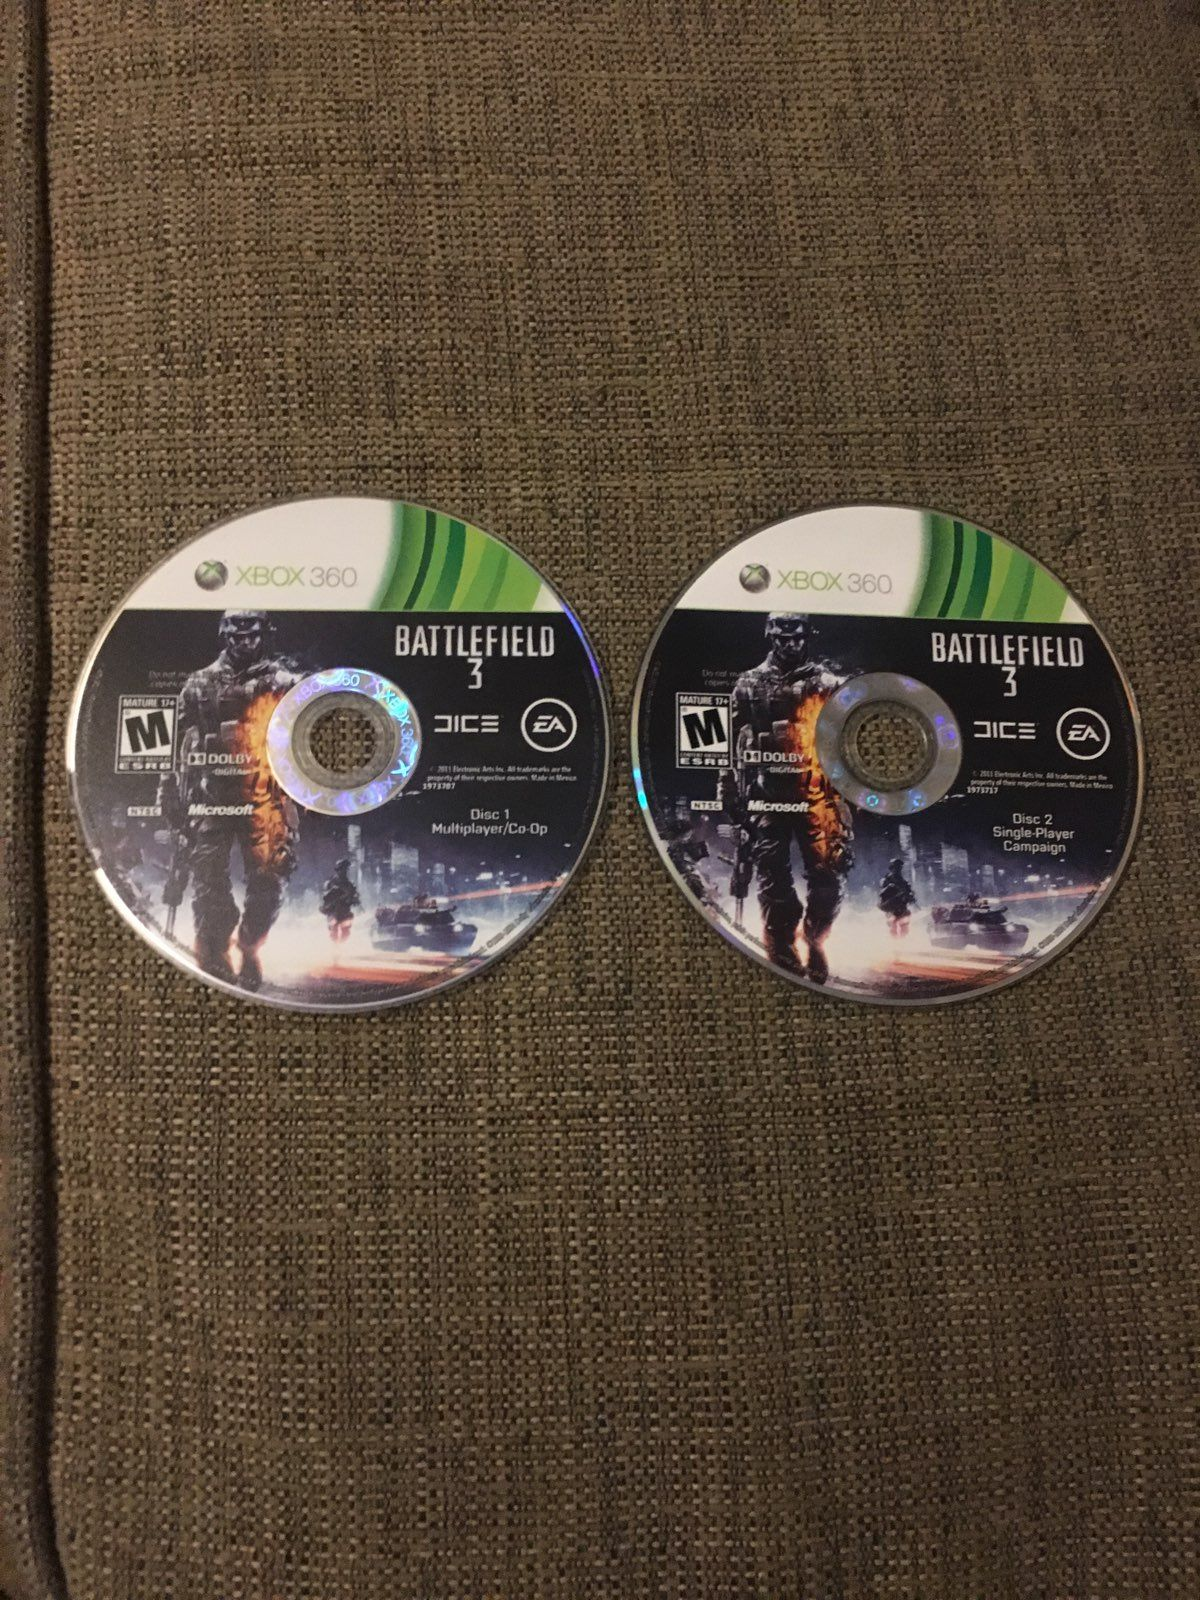 Multiplayer And Single Player Campaign Cds Both Are Perfect Just